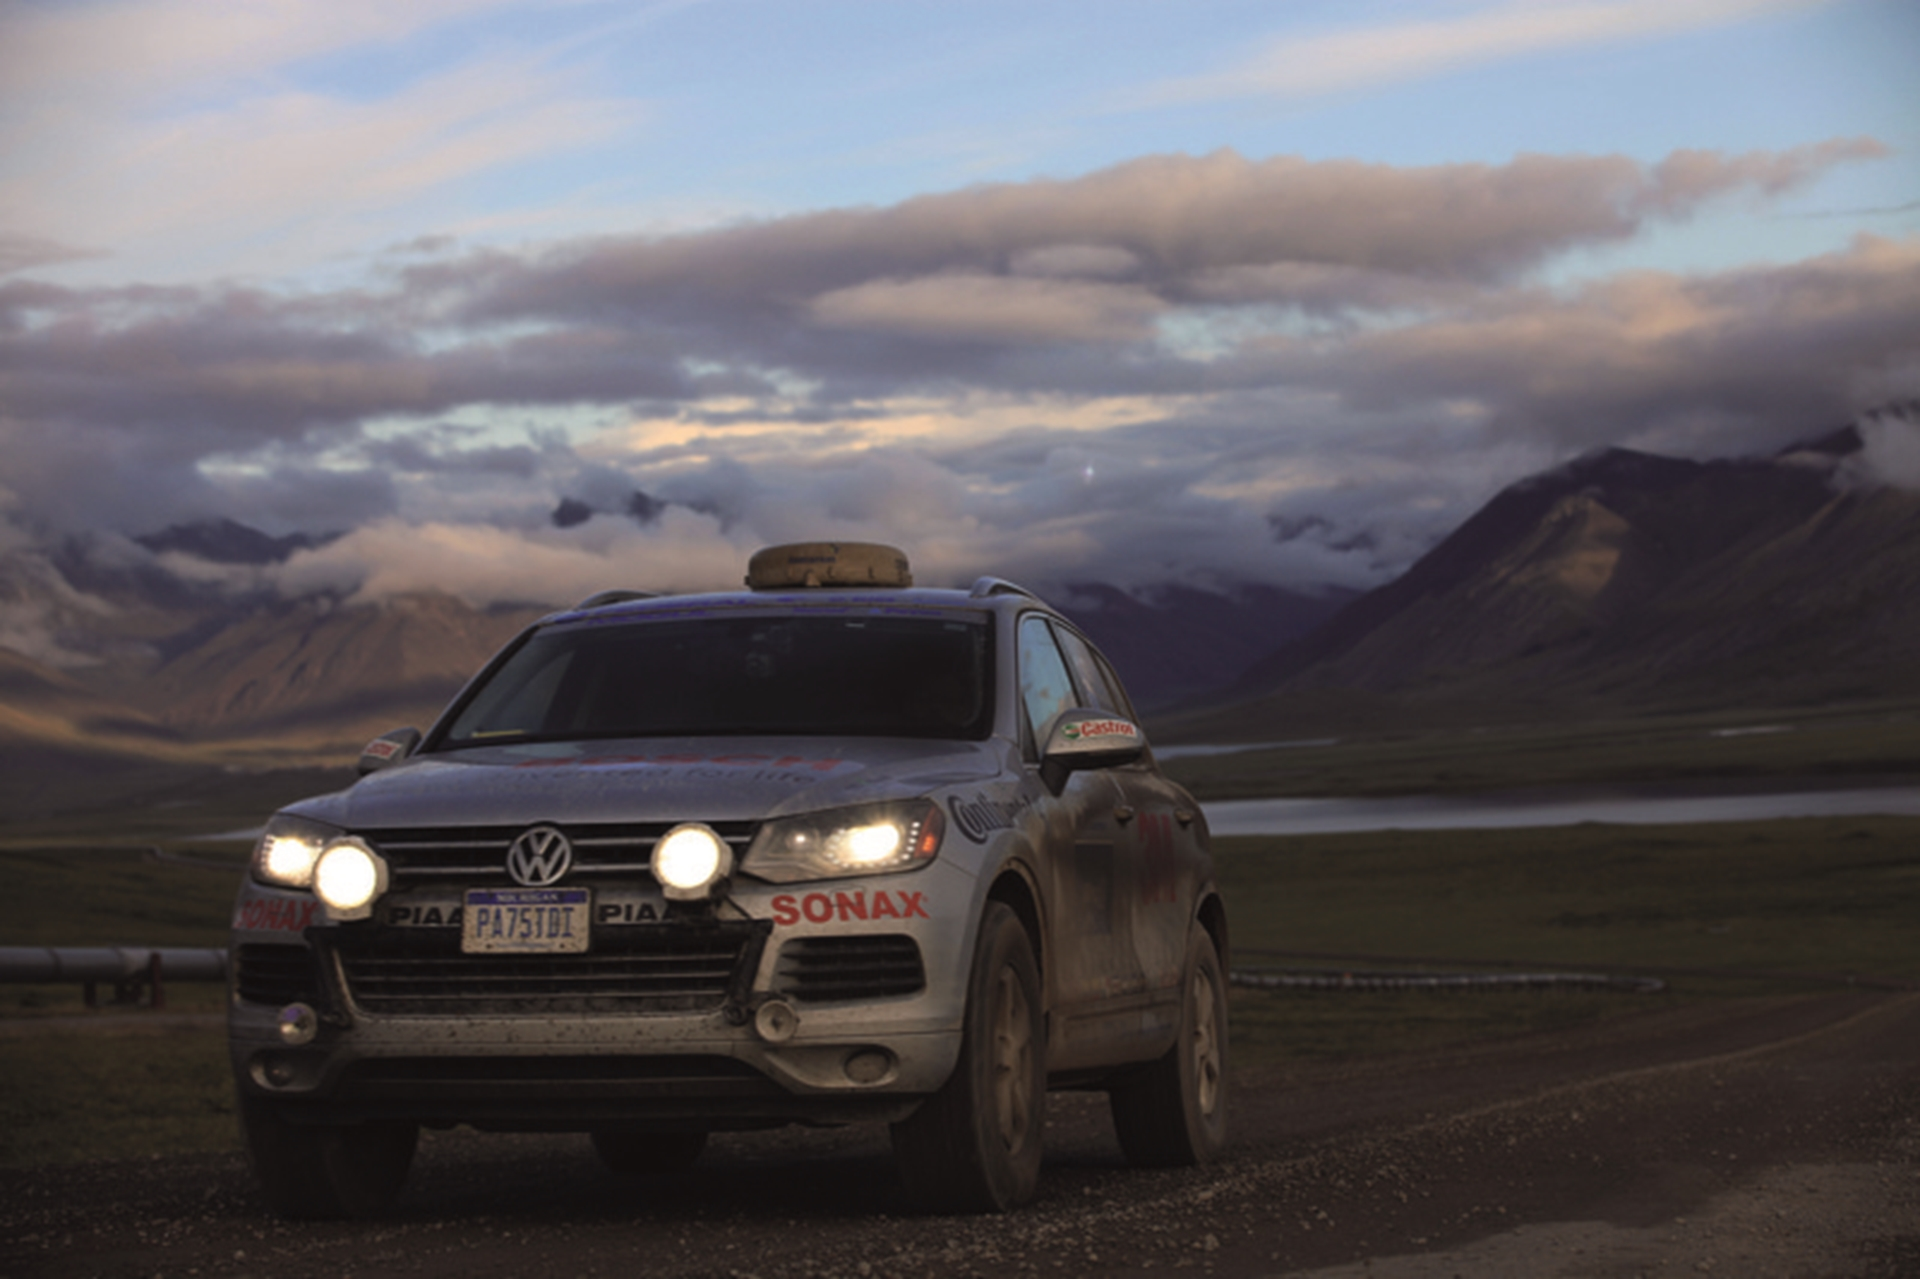 World record setting Touareg visits Wolfsburg